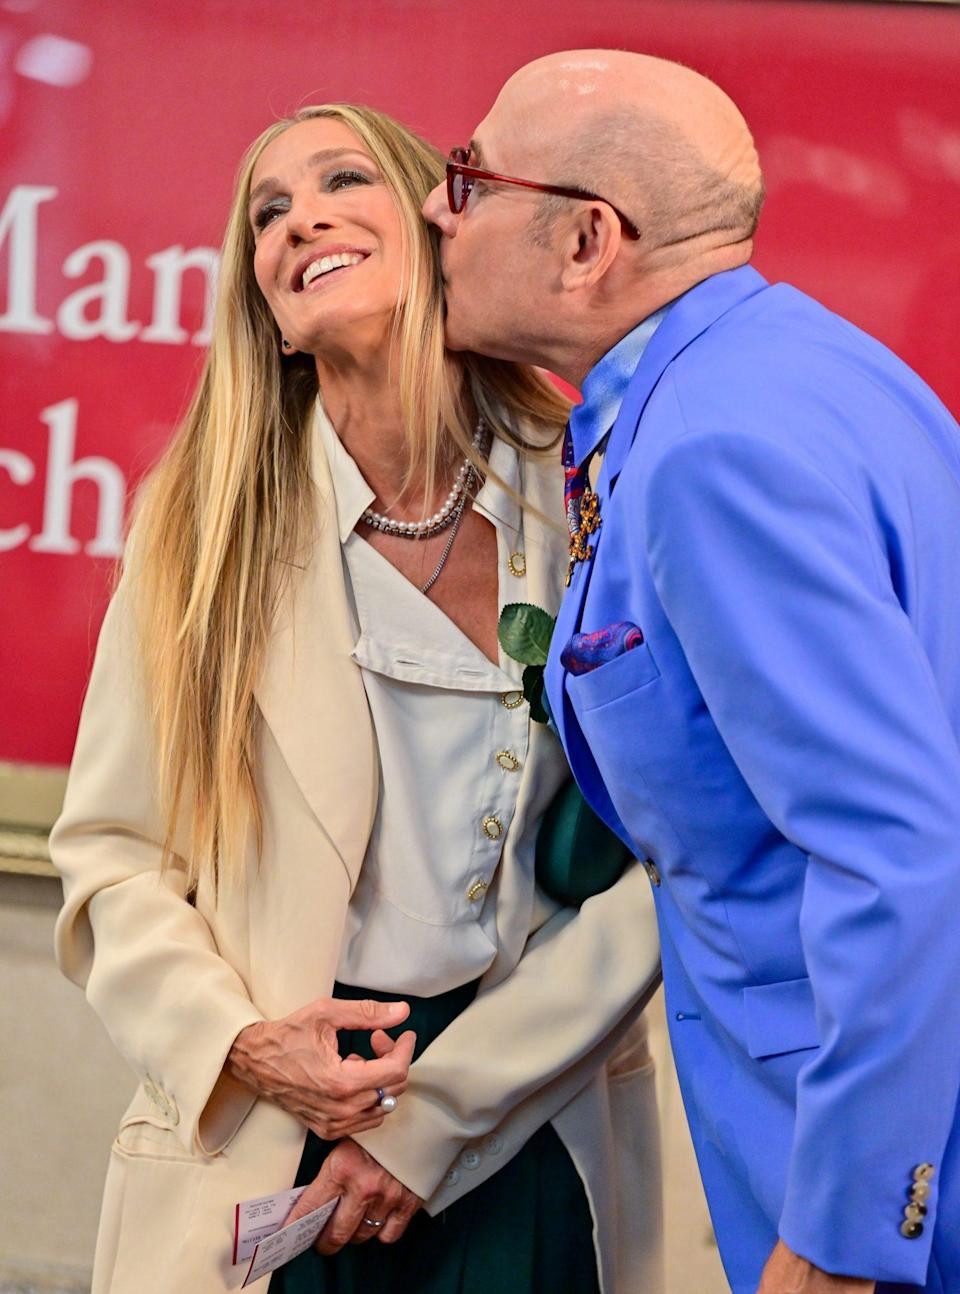 <p>Sarah Jessica Parker receives a sweet smooch from Willie Garson on the set of <em>And Just Like That</em> at the Lyceum Theater on July 24 in N.Y.C.</p>